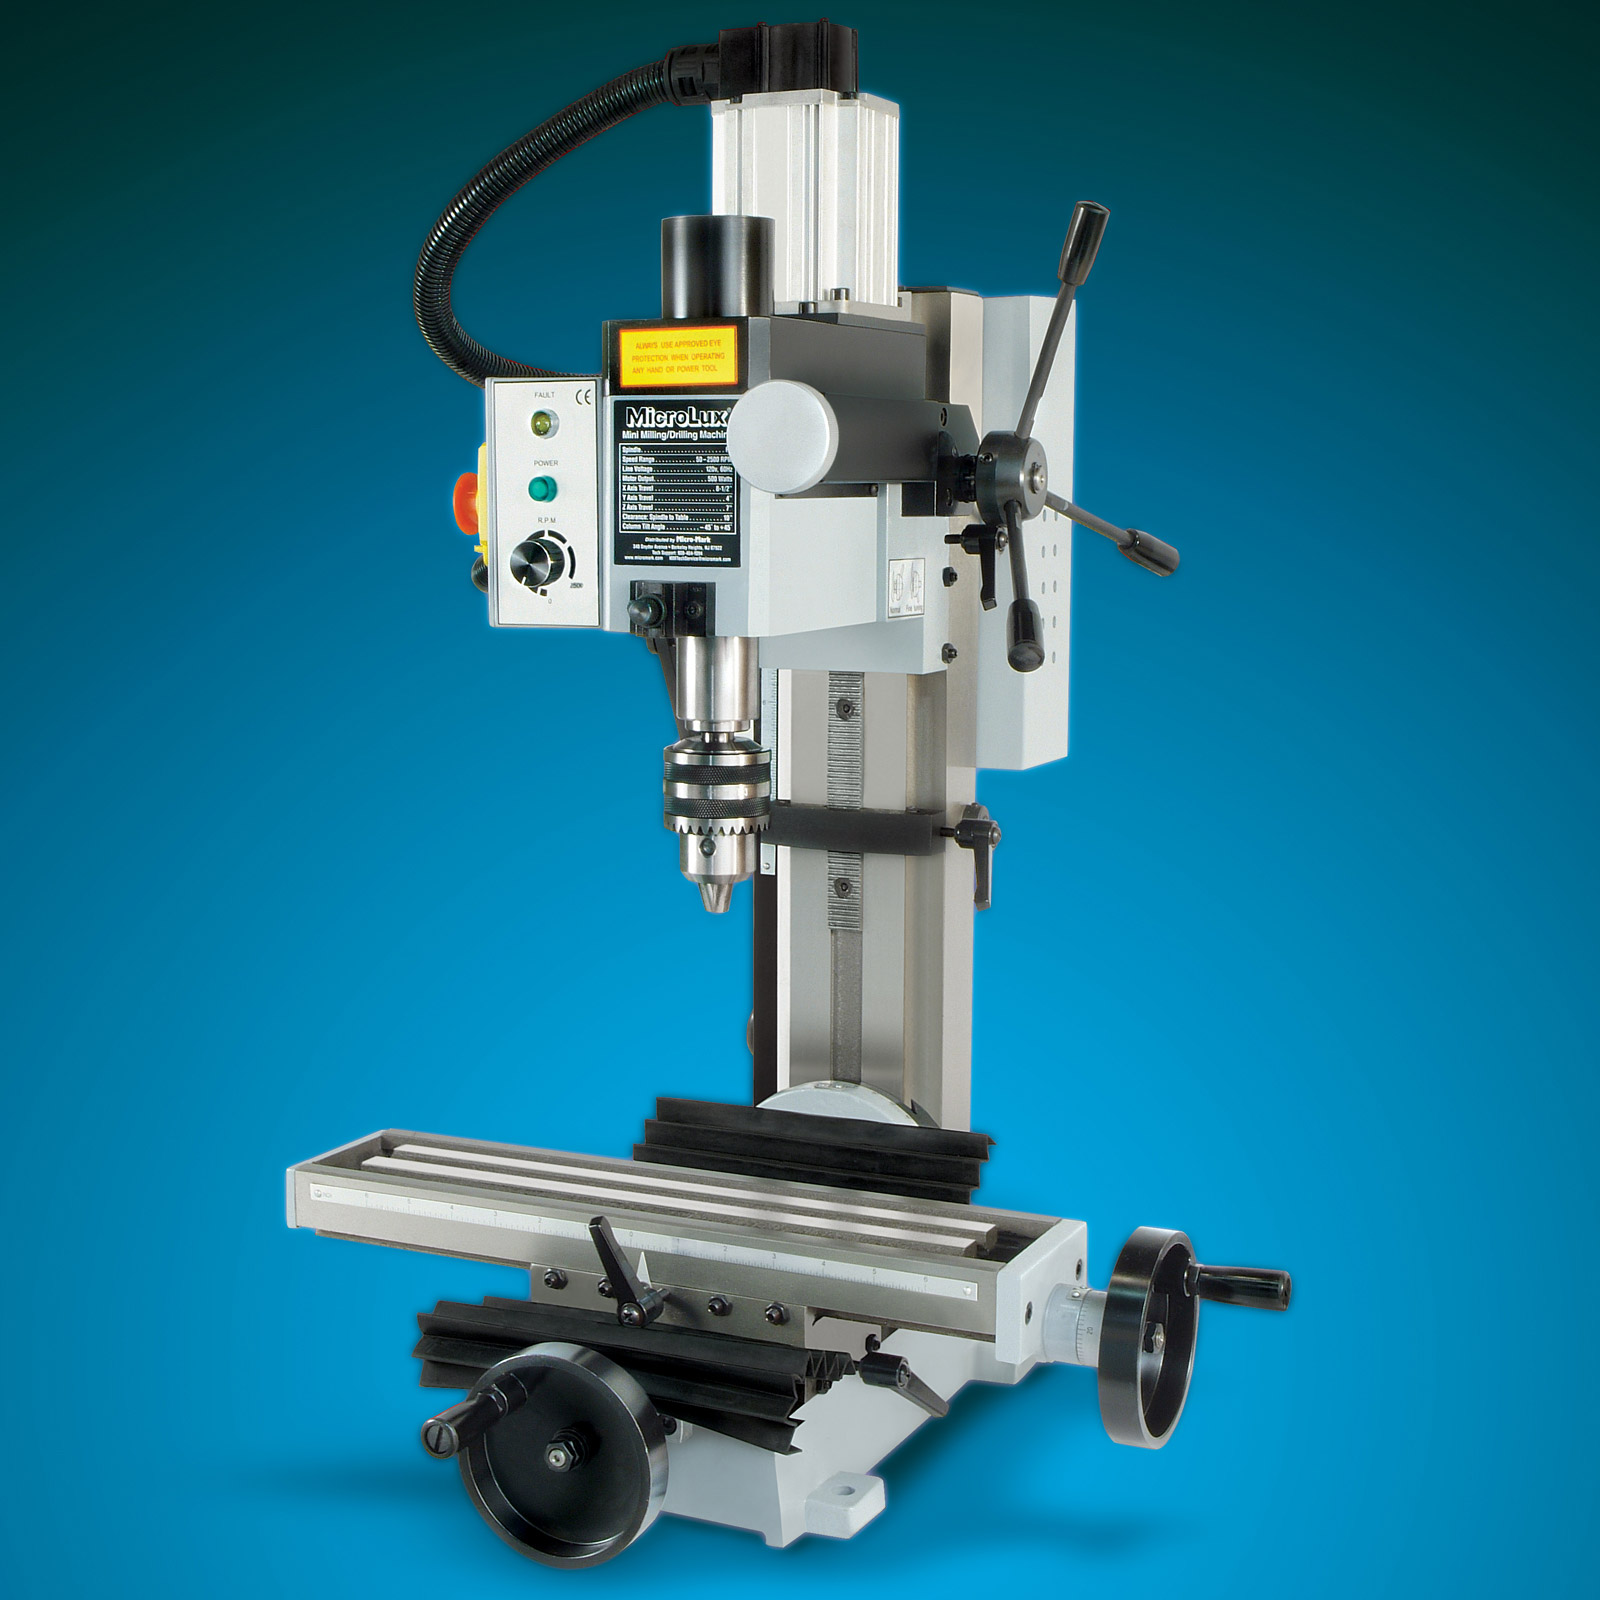 Tremendous Microlux High Precision Heavy Duty R8 Miniature Milling Machine Download Free Architecture Designs Scobabritishbridgeorg